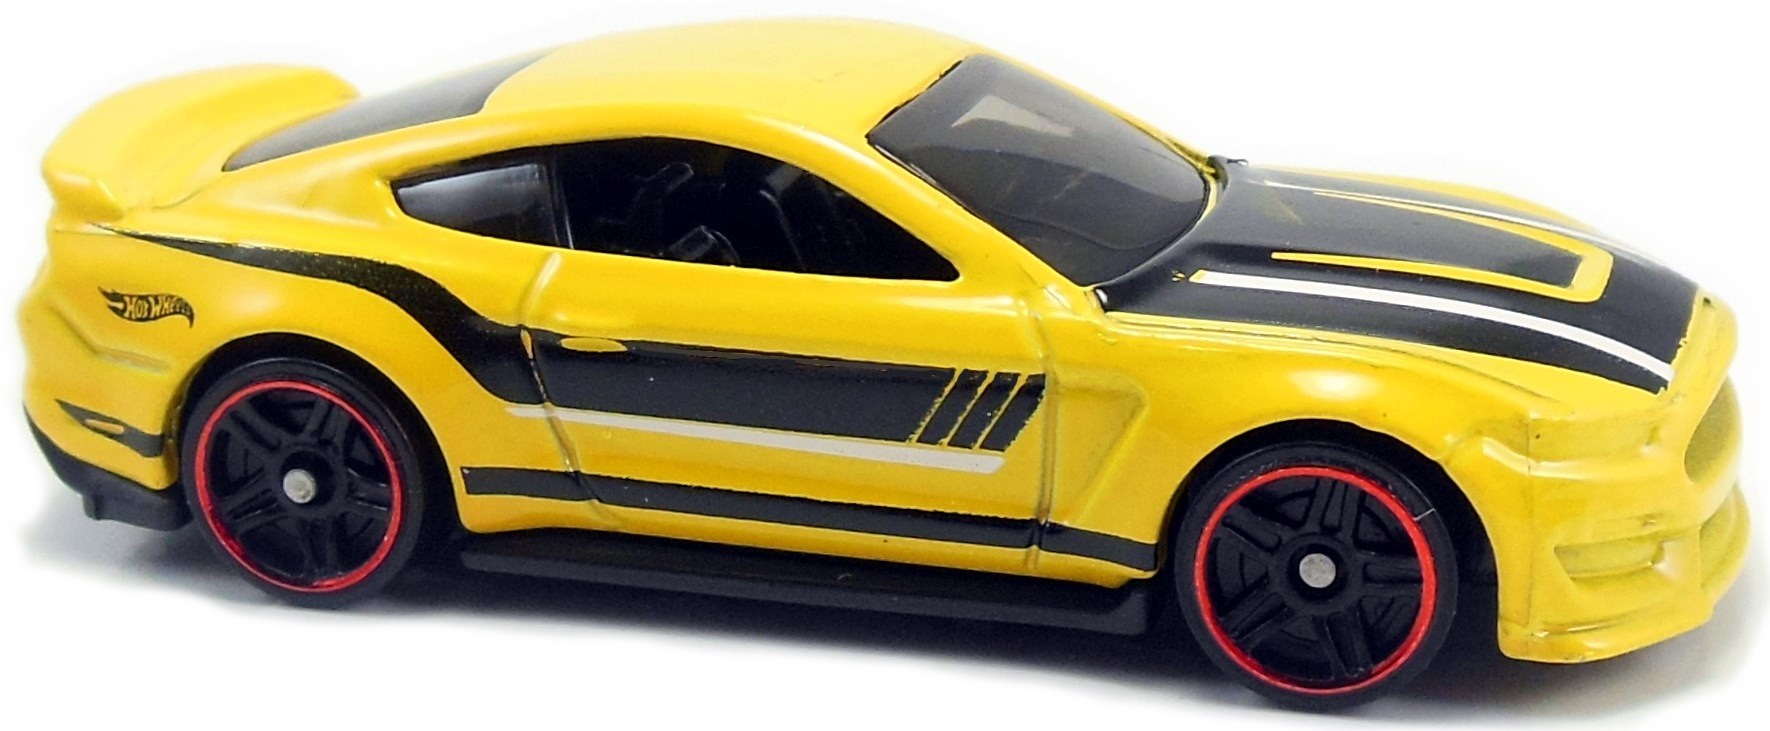 Ford Shelby Gt350r 74mm 2016 Hot Wheels Newsletter